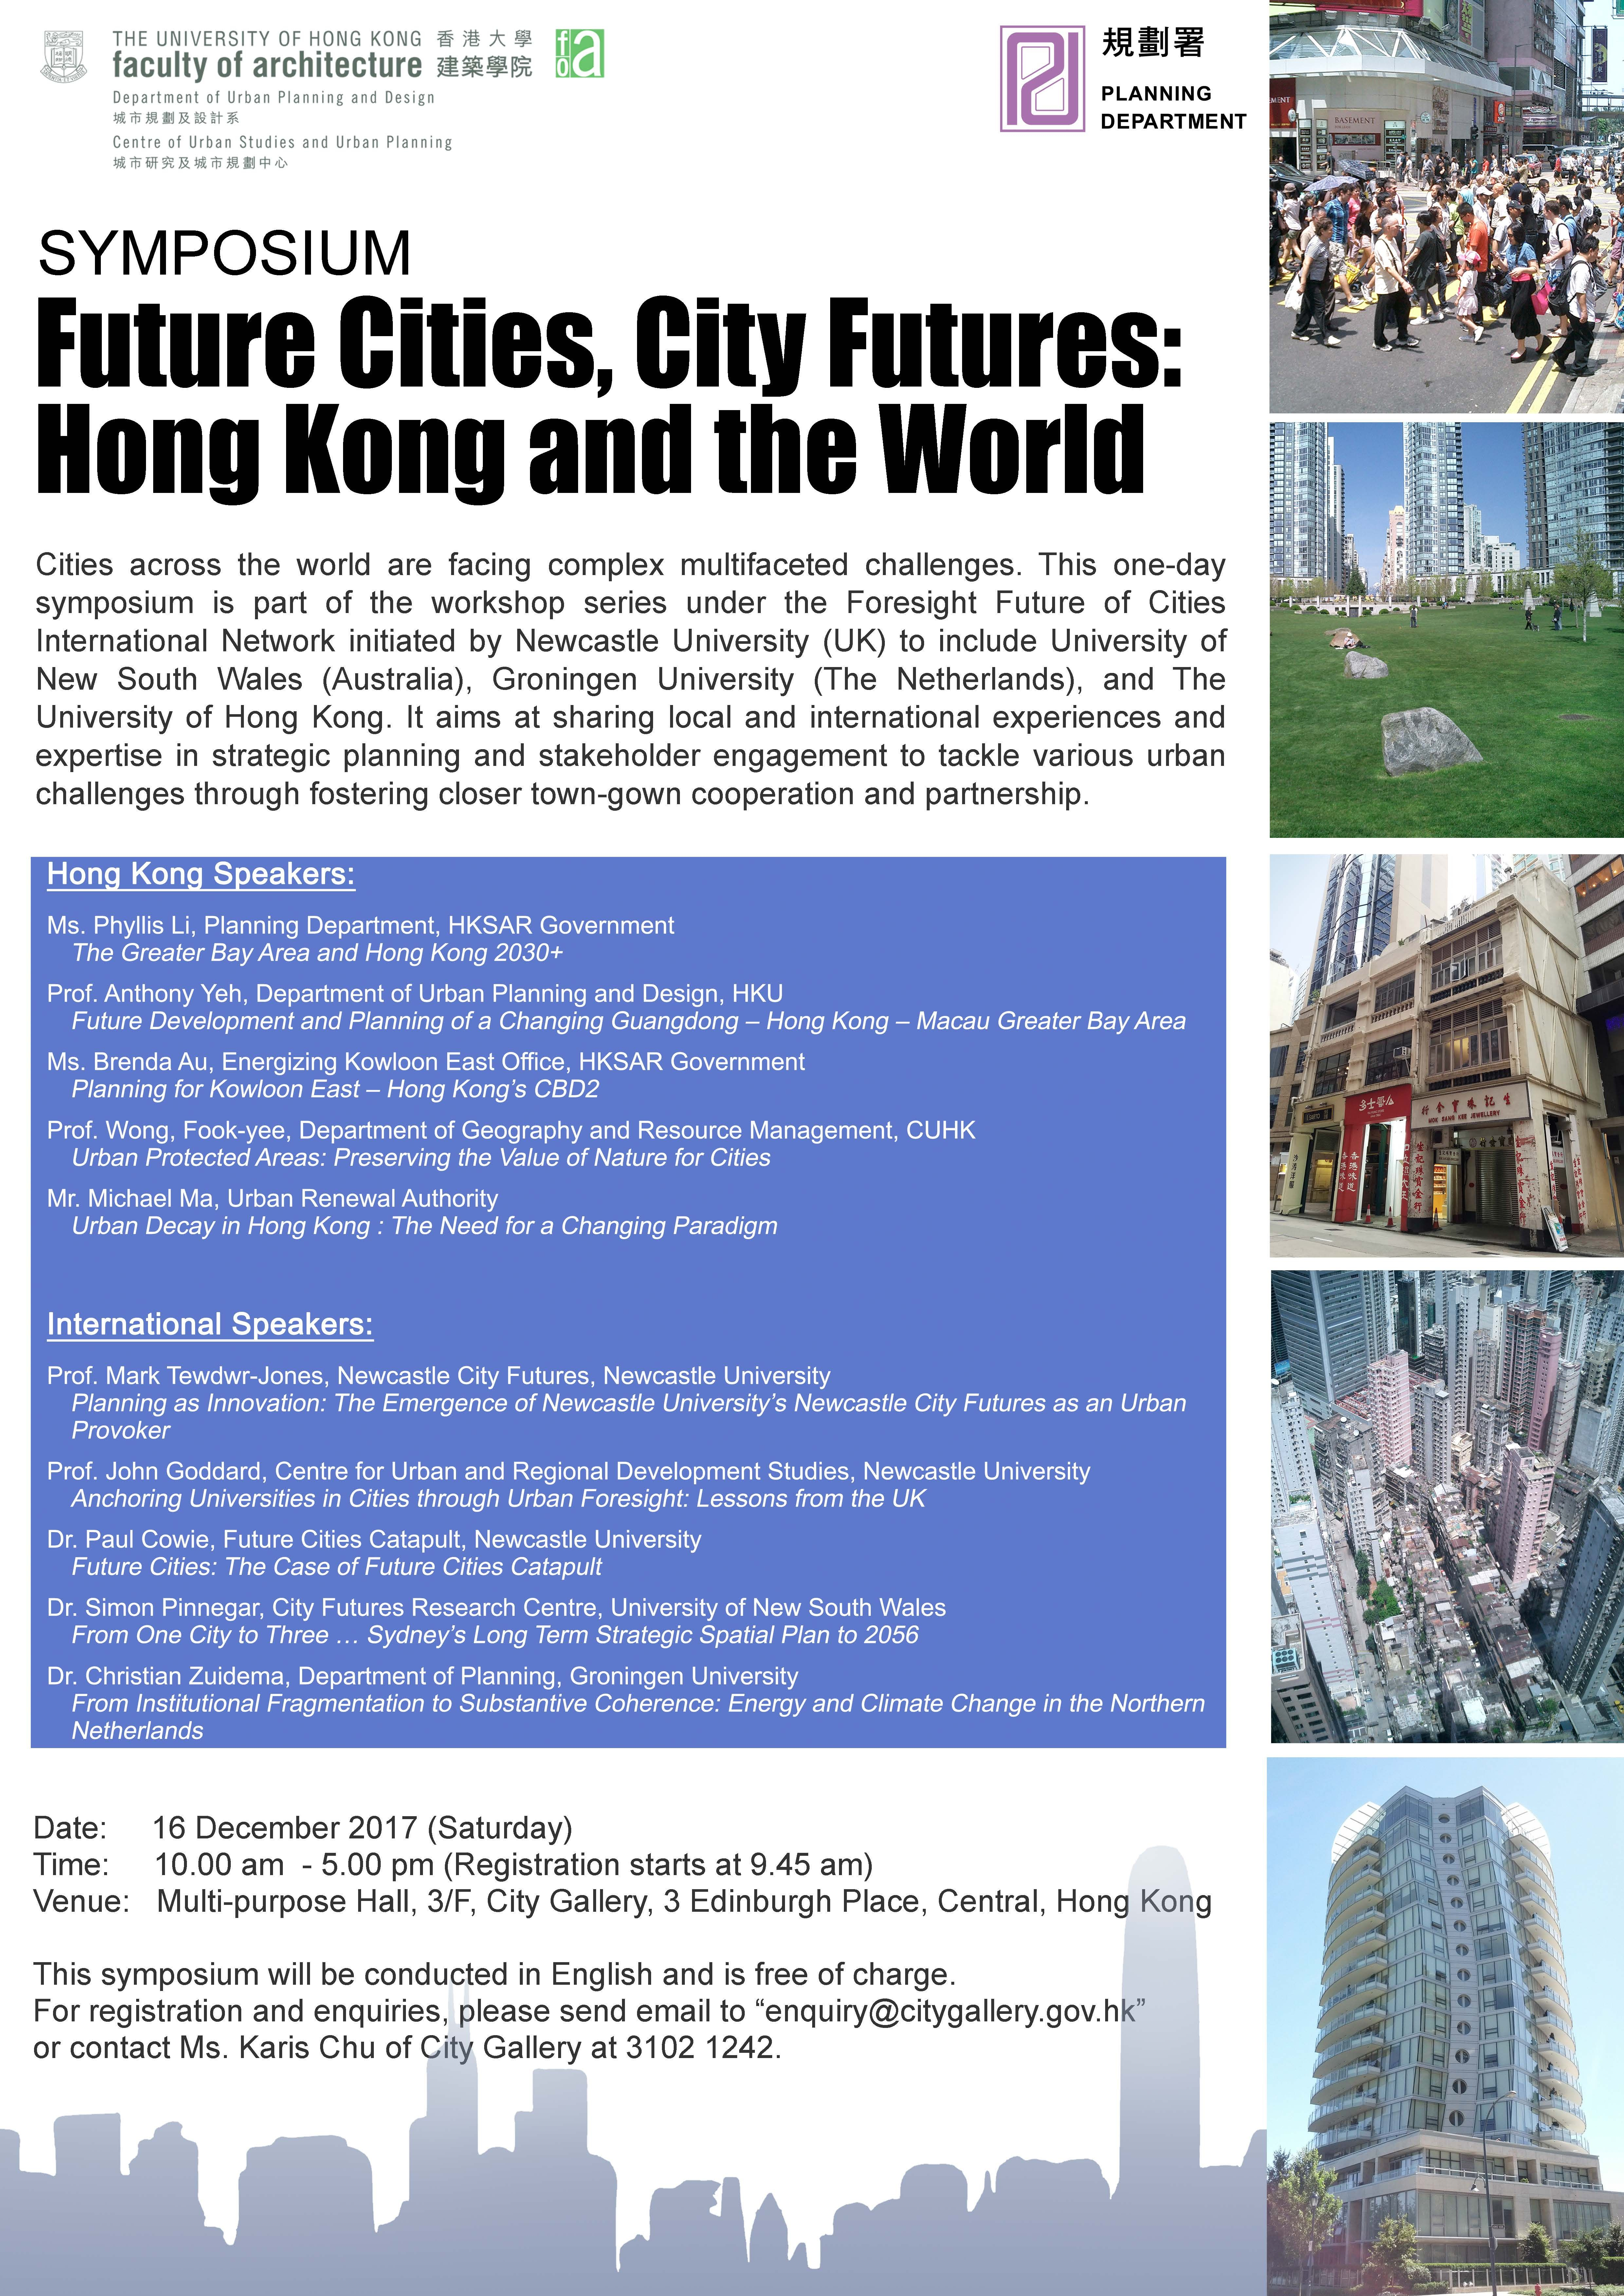 Symposium<br>Future Cities, City Futures: Hong Kong and the World